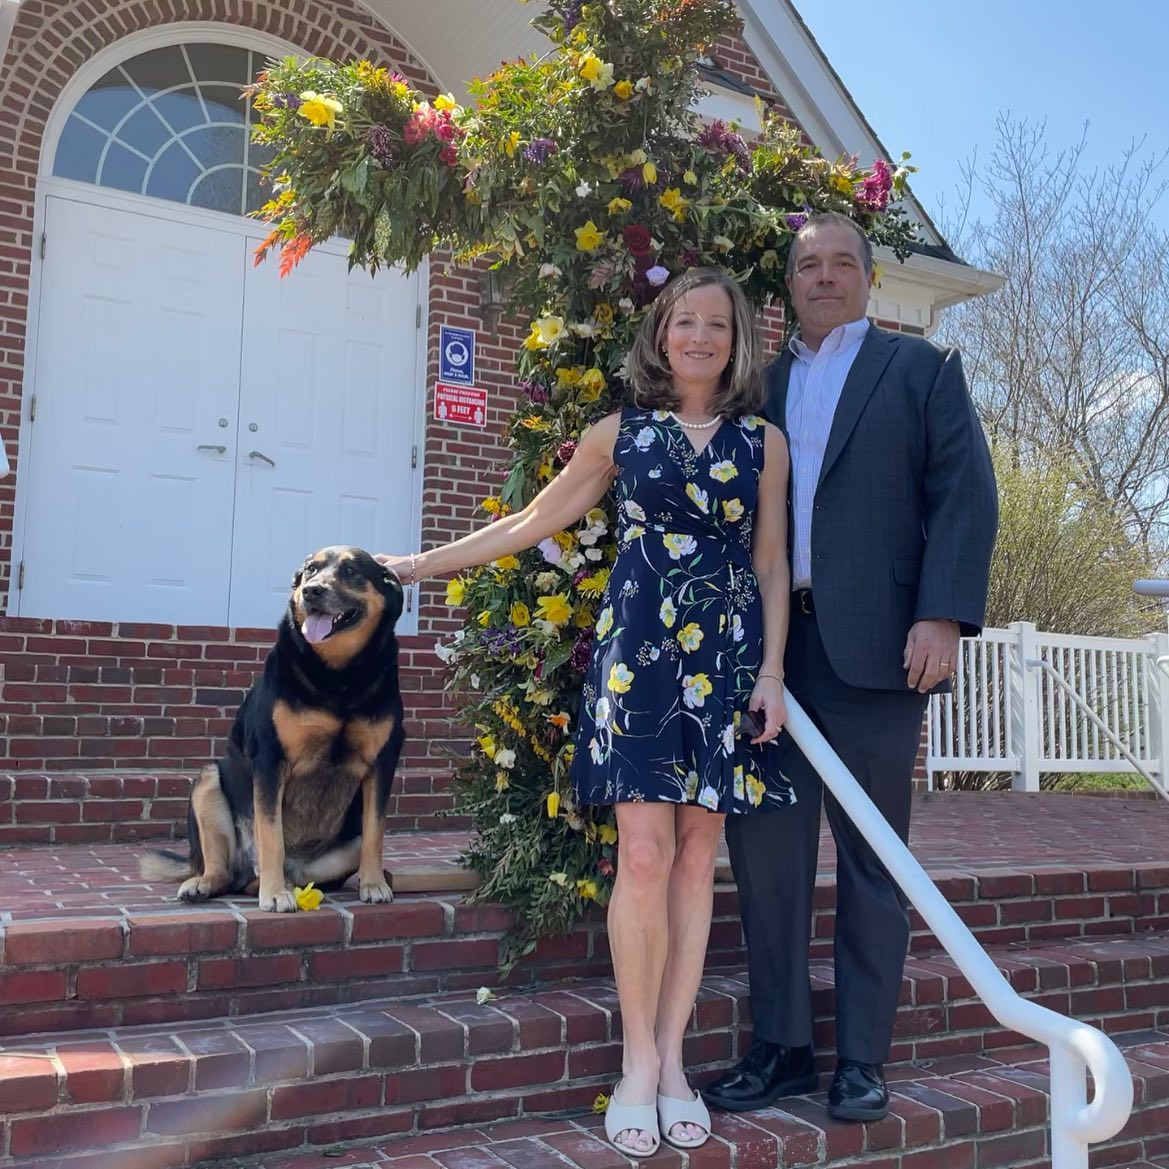 Couple and dog in front of a cross decorated with flowers on Easter Sunday